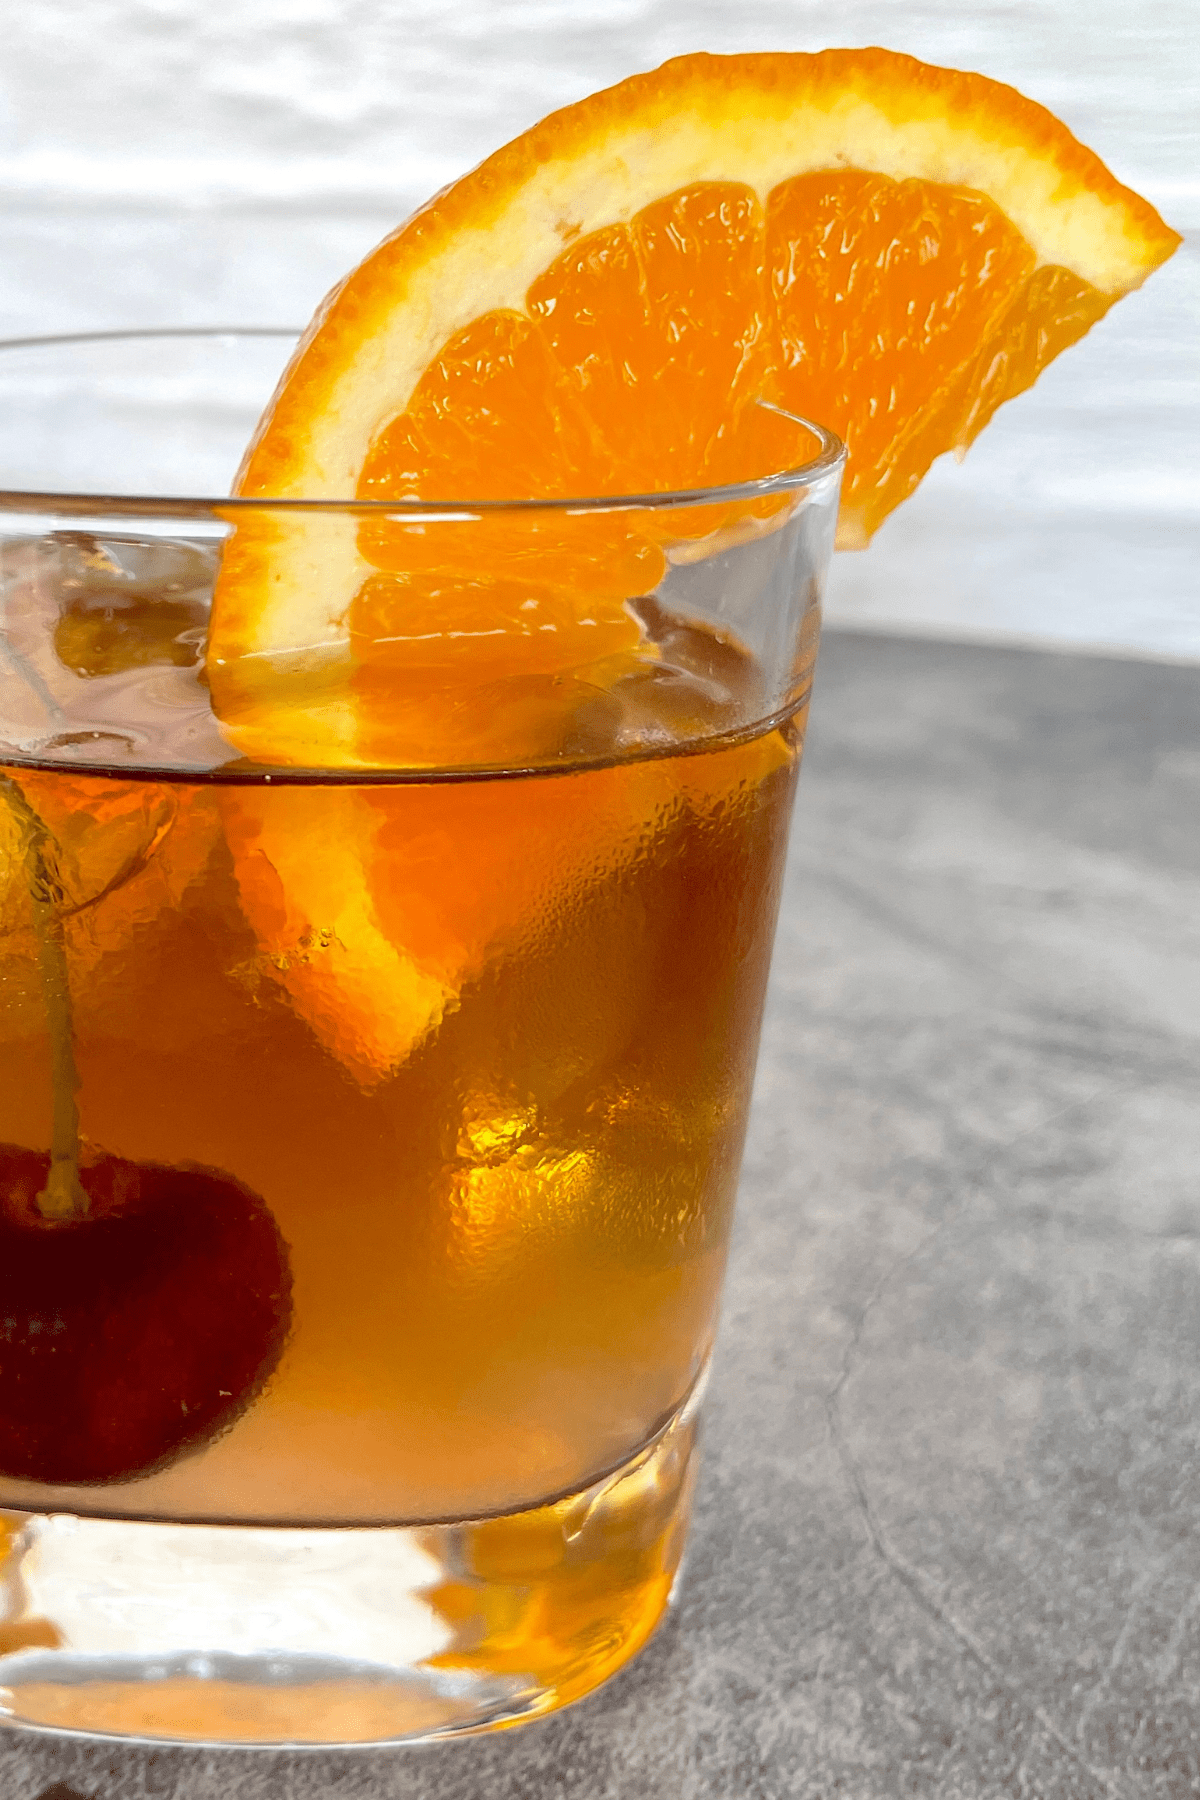 Old fashioned cocktail with an orange wedge and cherry